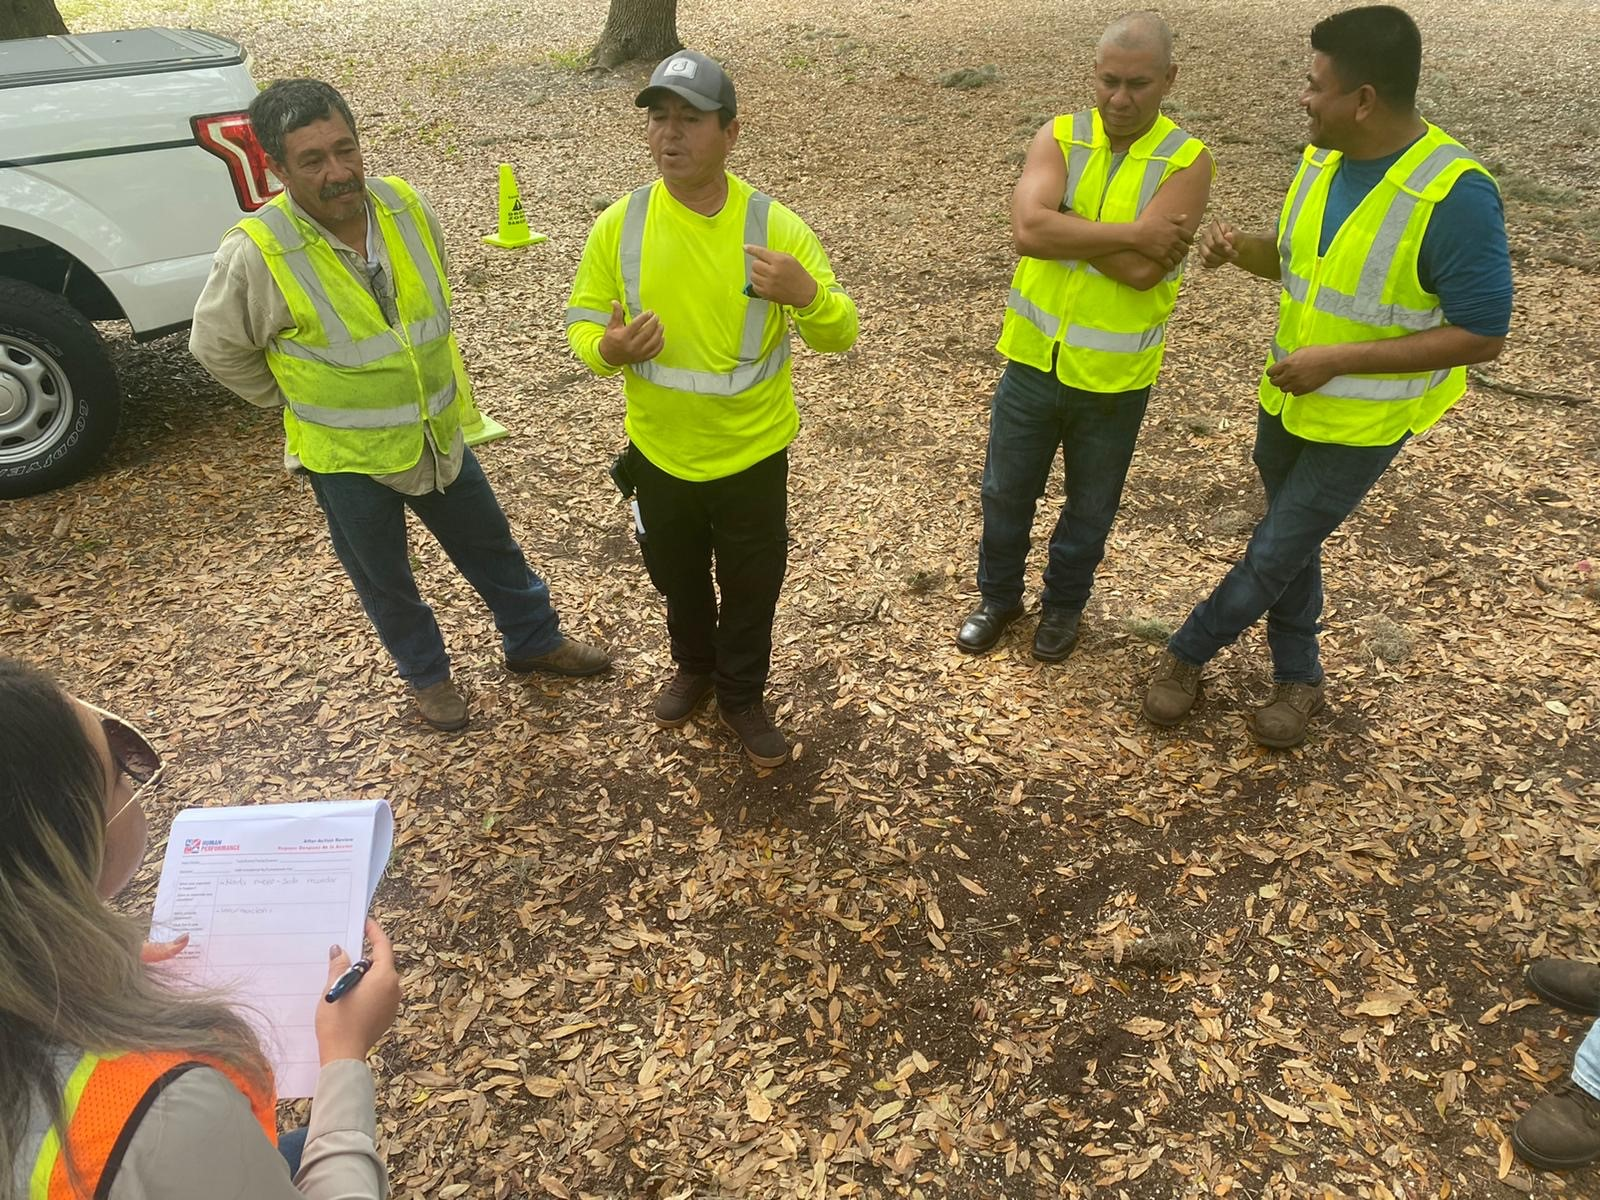 Small group discussion utility vegetation management Florida